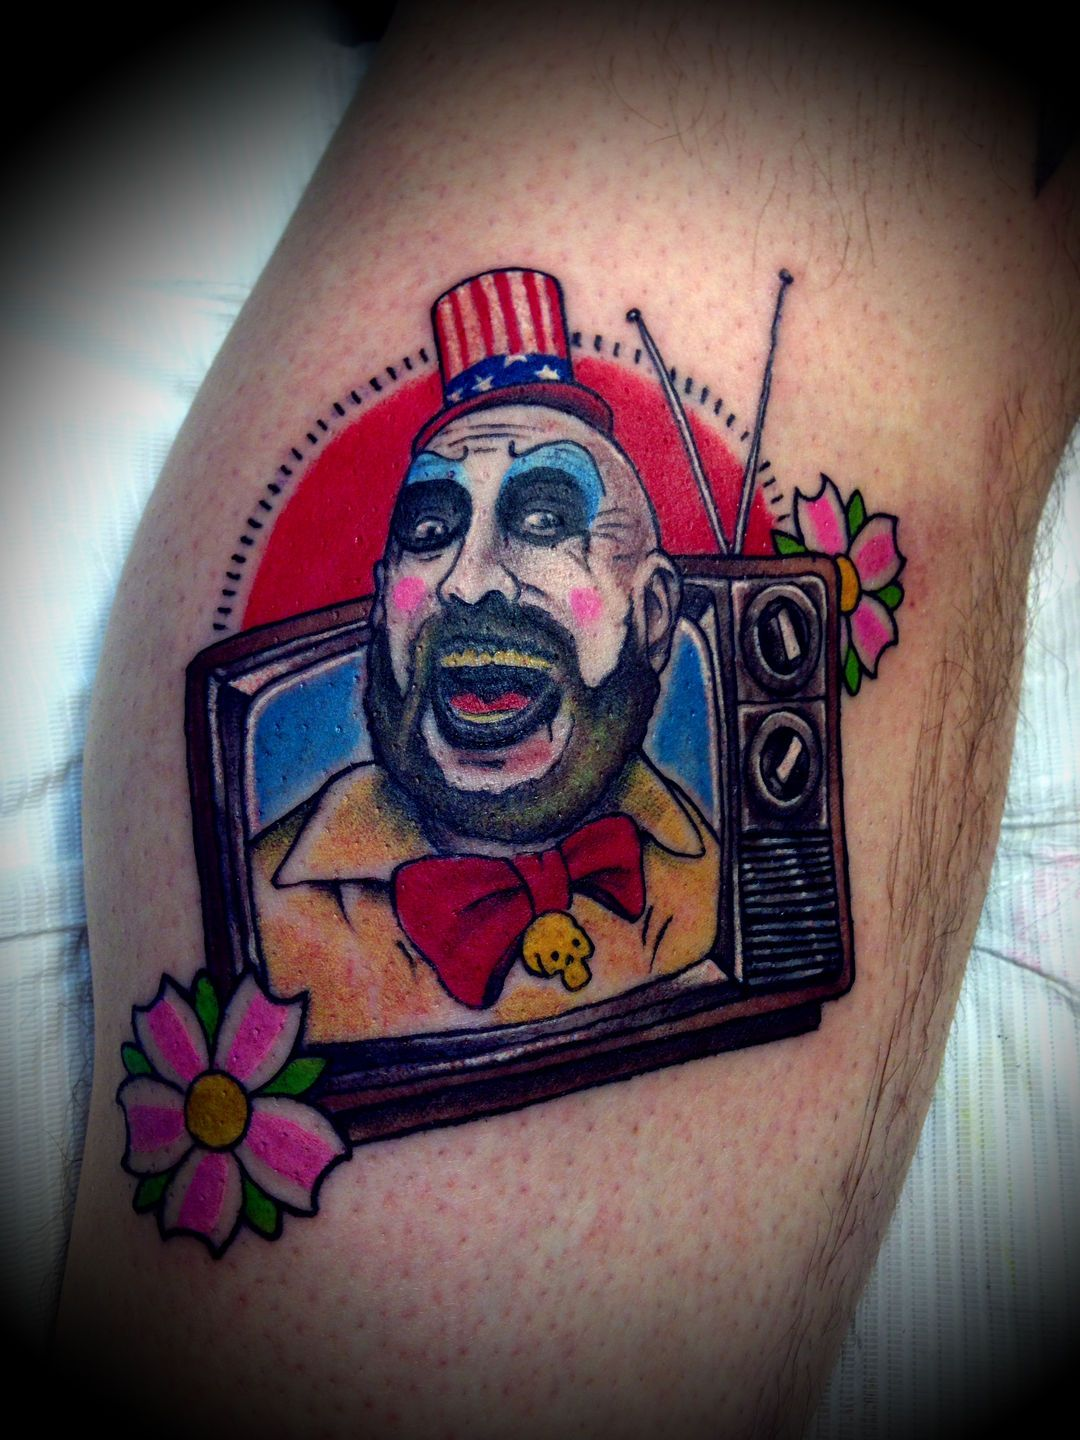 Captain Spaulding Tattoo Google Search Tattoo Ideas Ideas And Designs